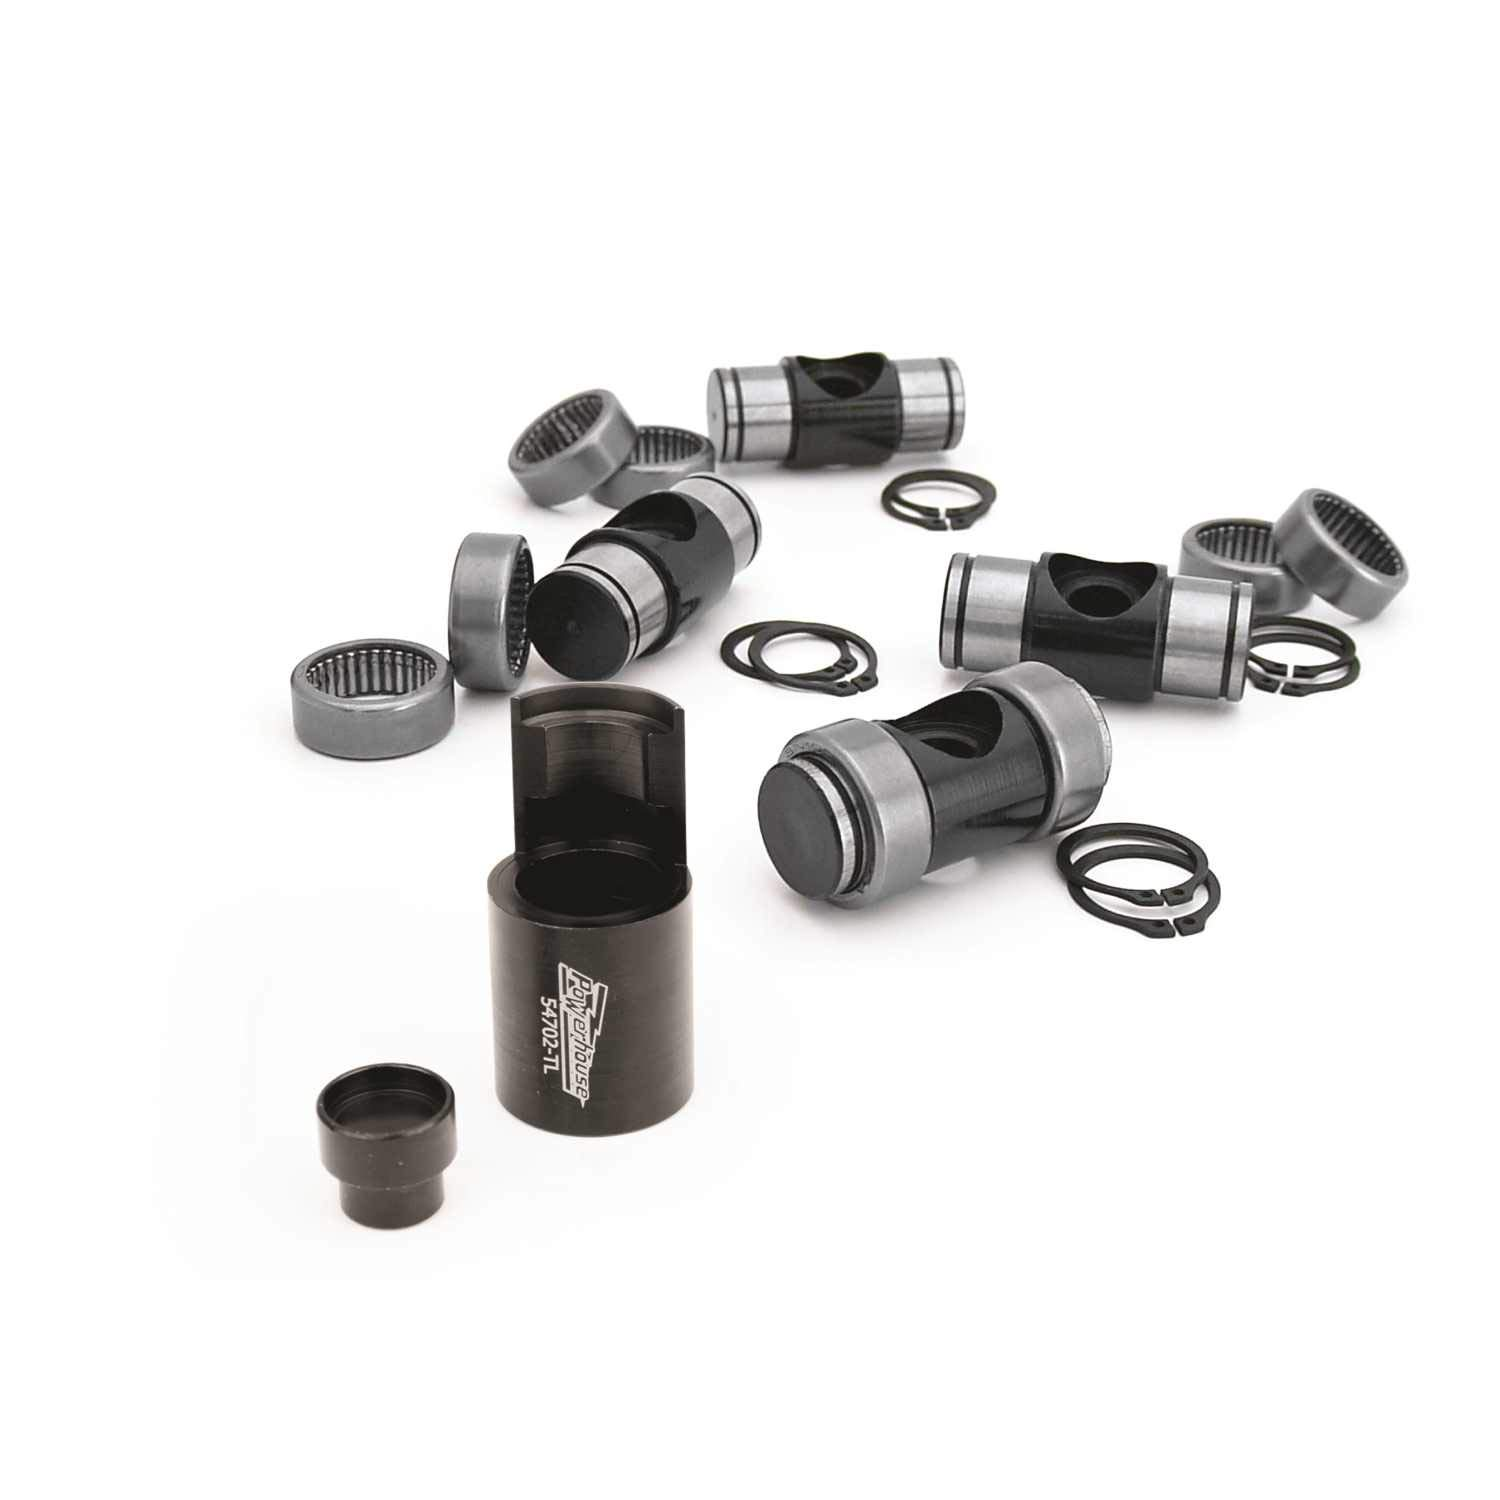 COMP Cams 13702TL-KIT Trunnion Kit with Disassembly/Install Tool Included (Ls)